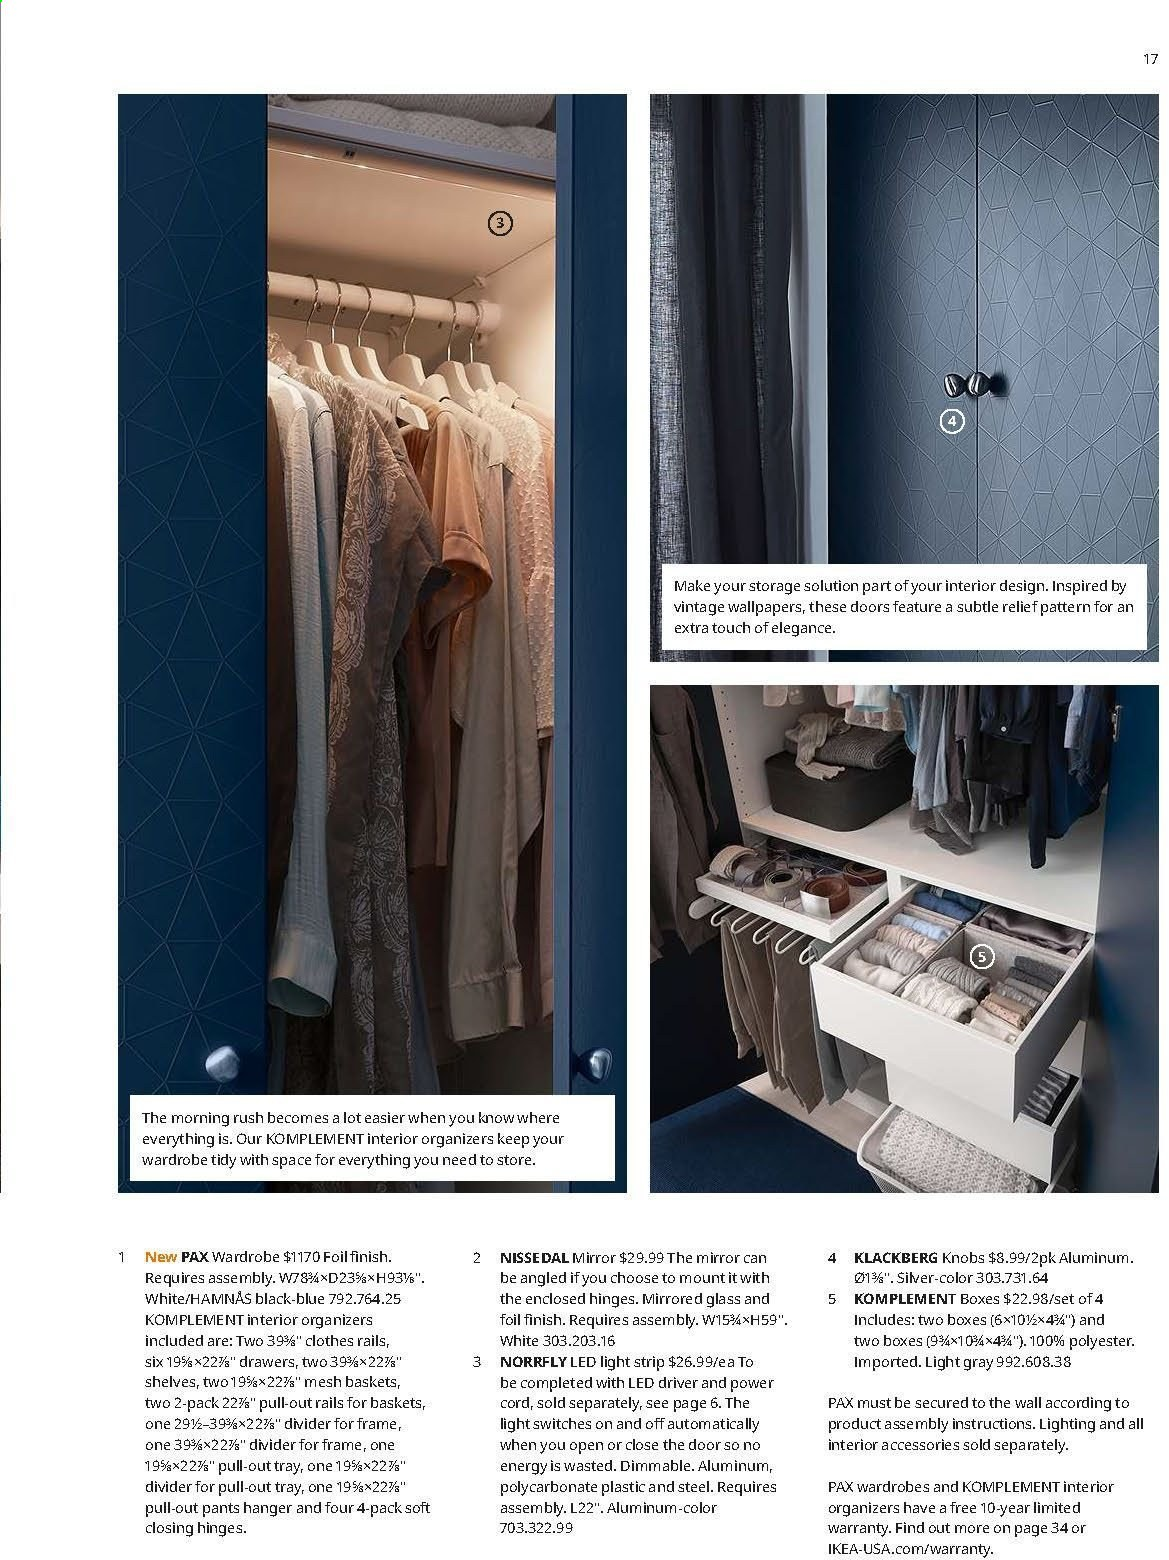 Ikea Flyer 08 01 2019 07 31 2020 Weekly Ads - Ikea Wardrobe Ksa